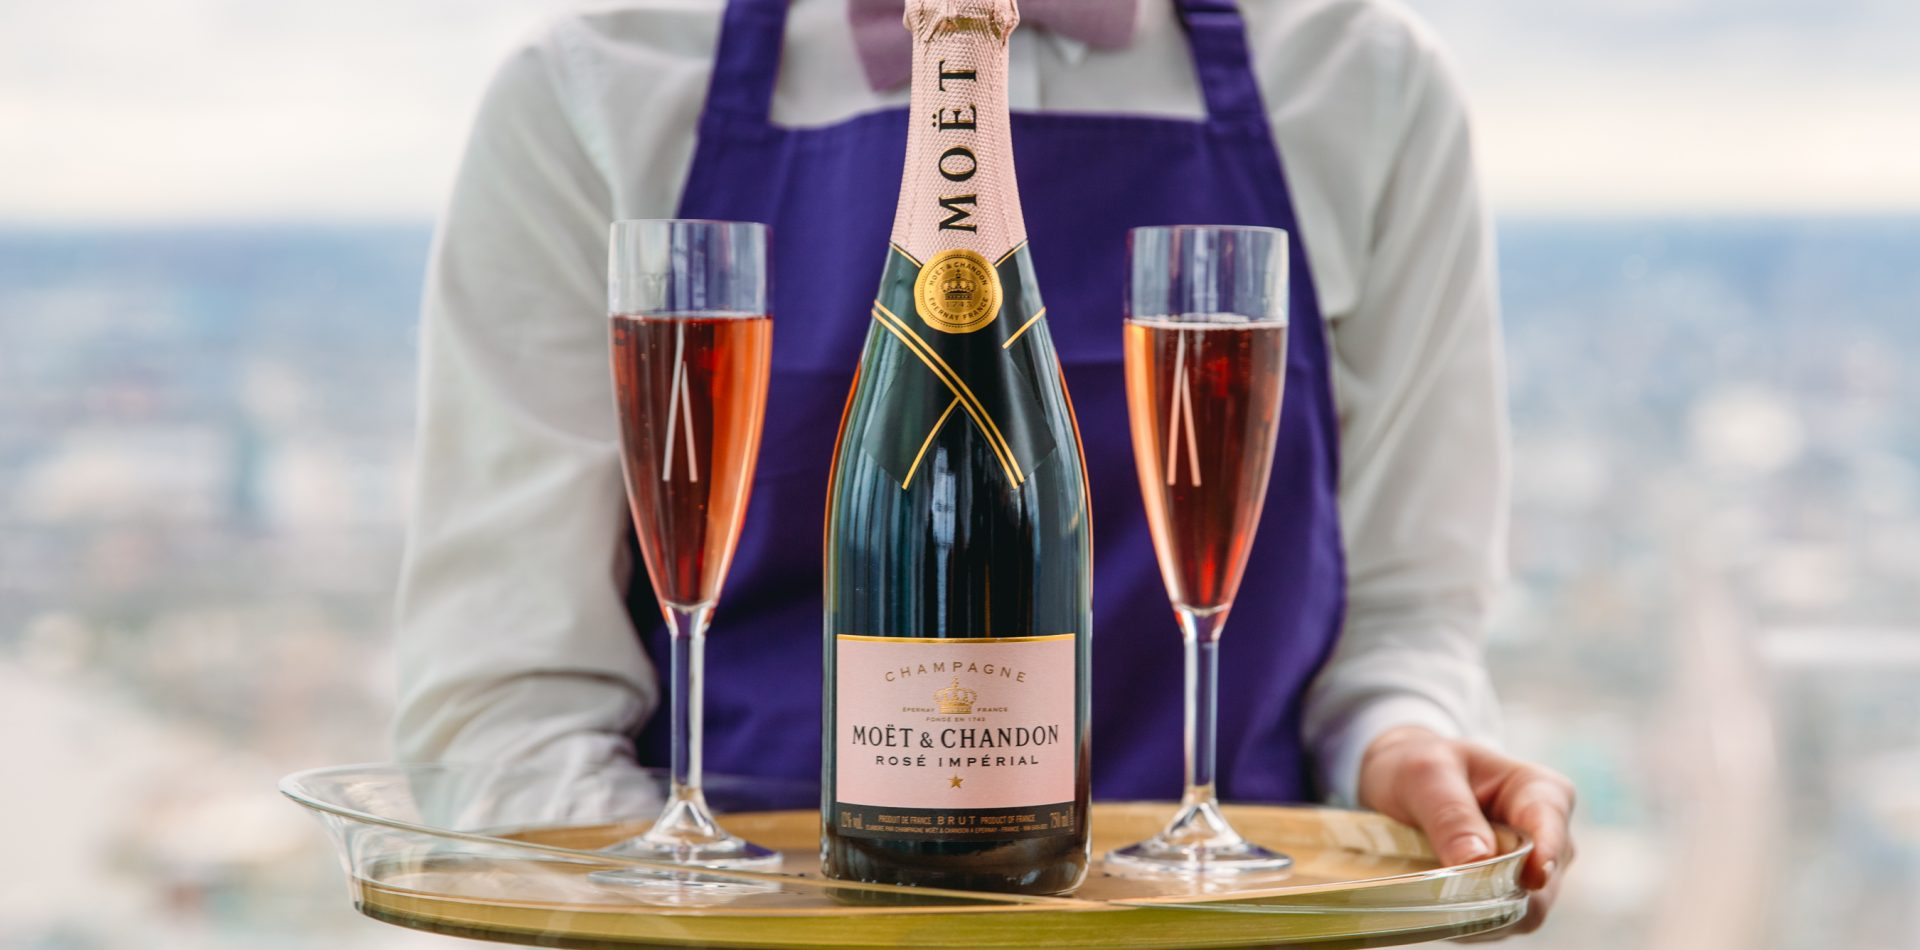 CELEBRATE VALENTINE'S IN STYLE WITH OUR EXCLUSIVE CHAMPAGNE PARTY